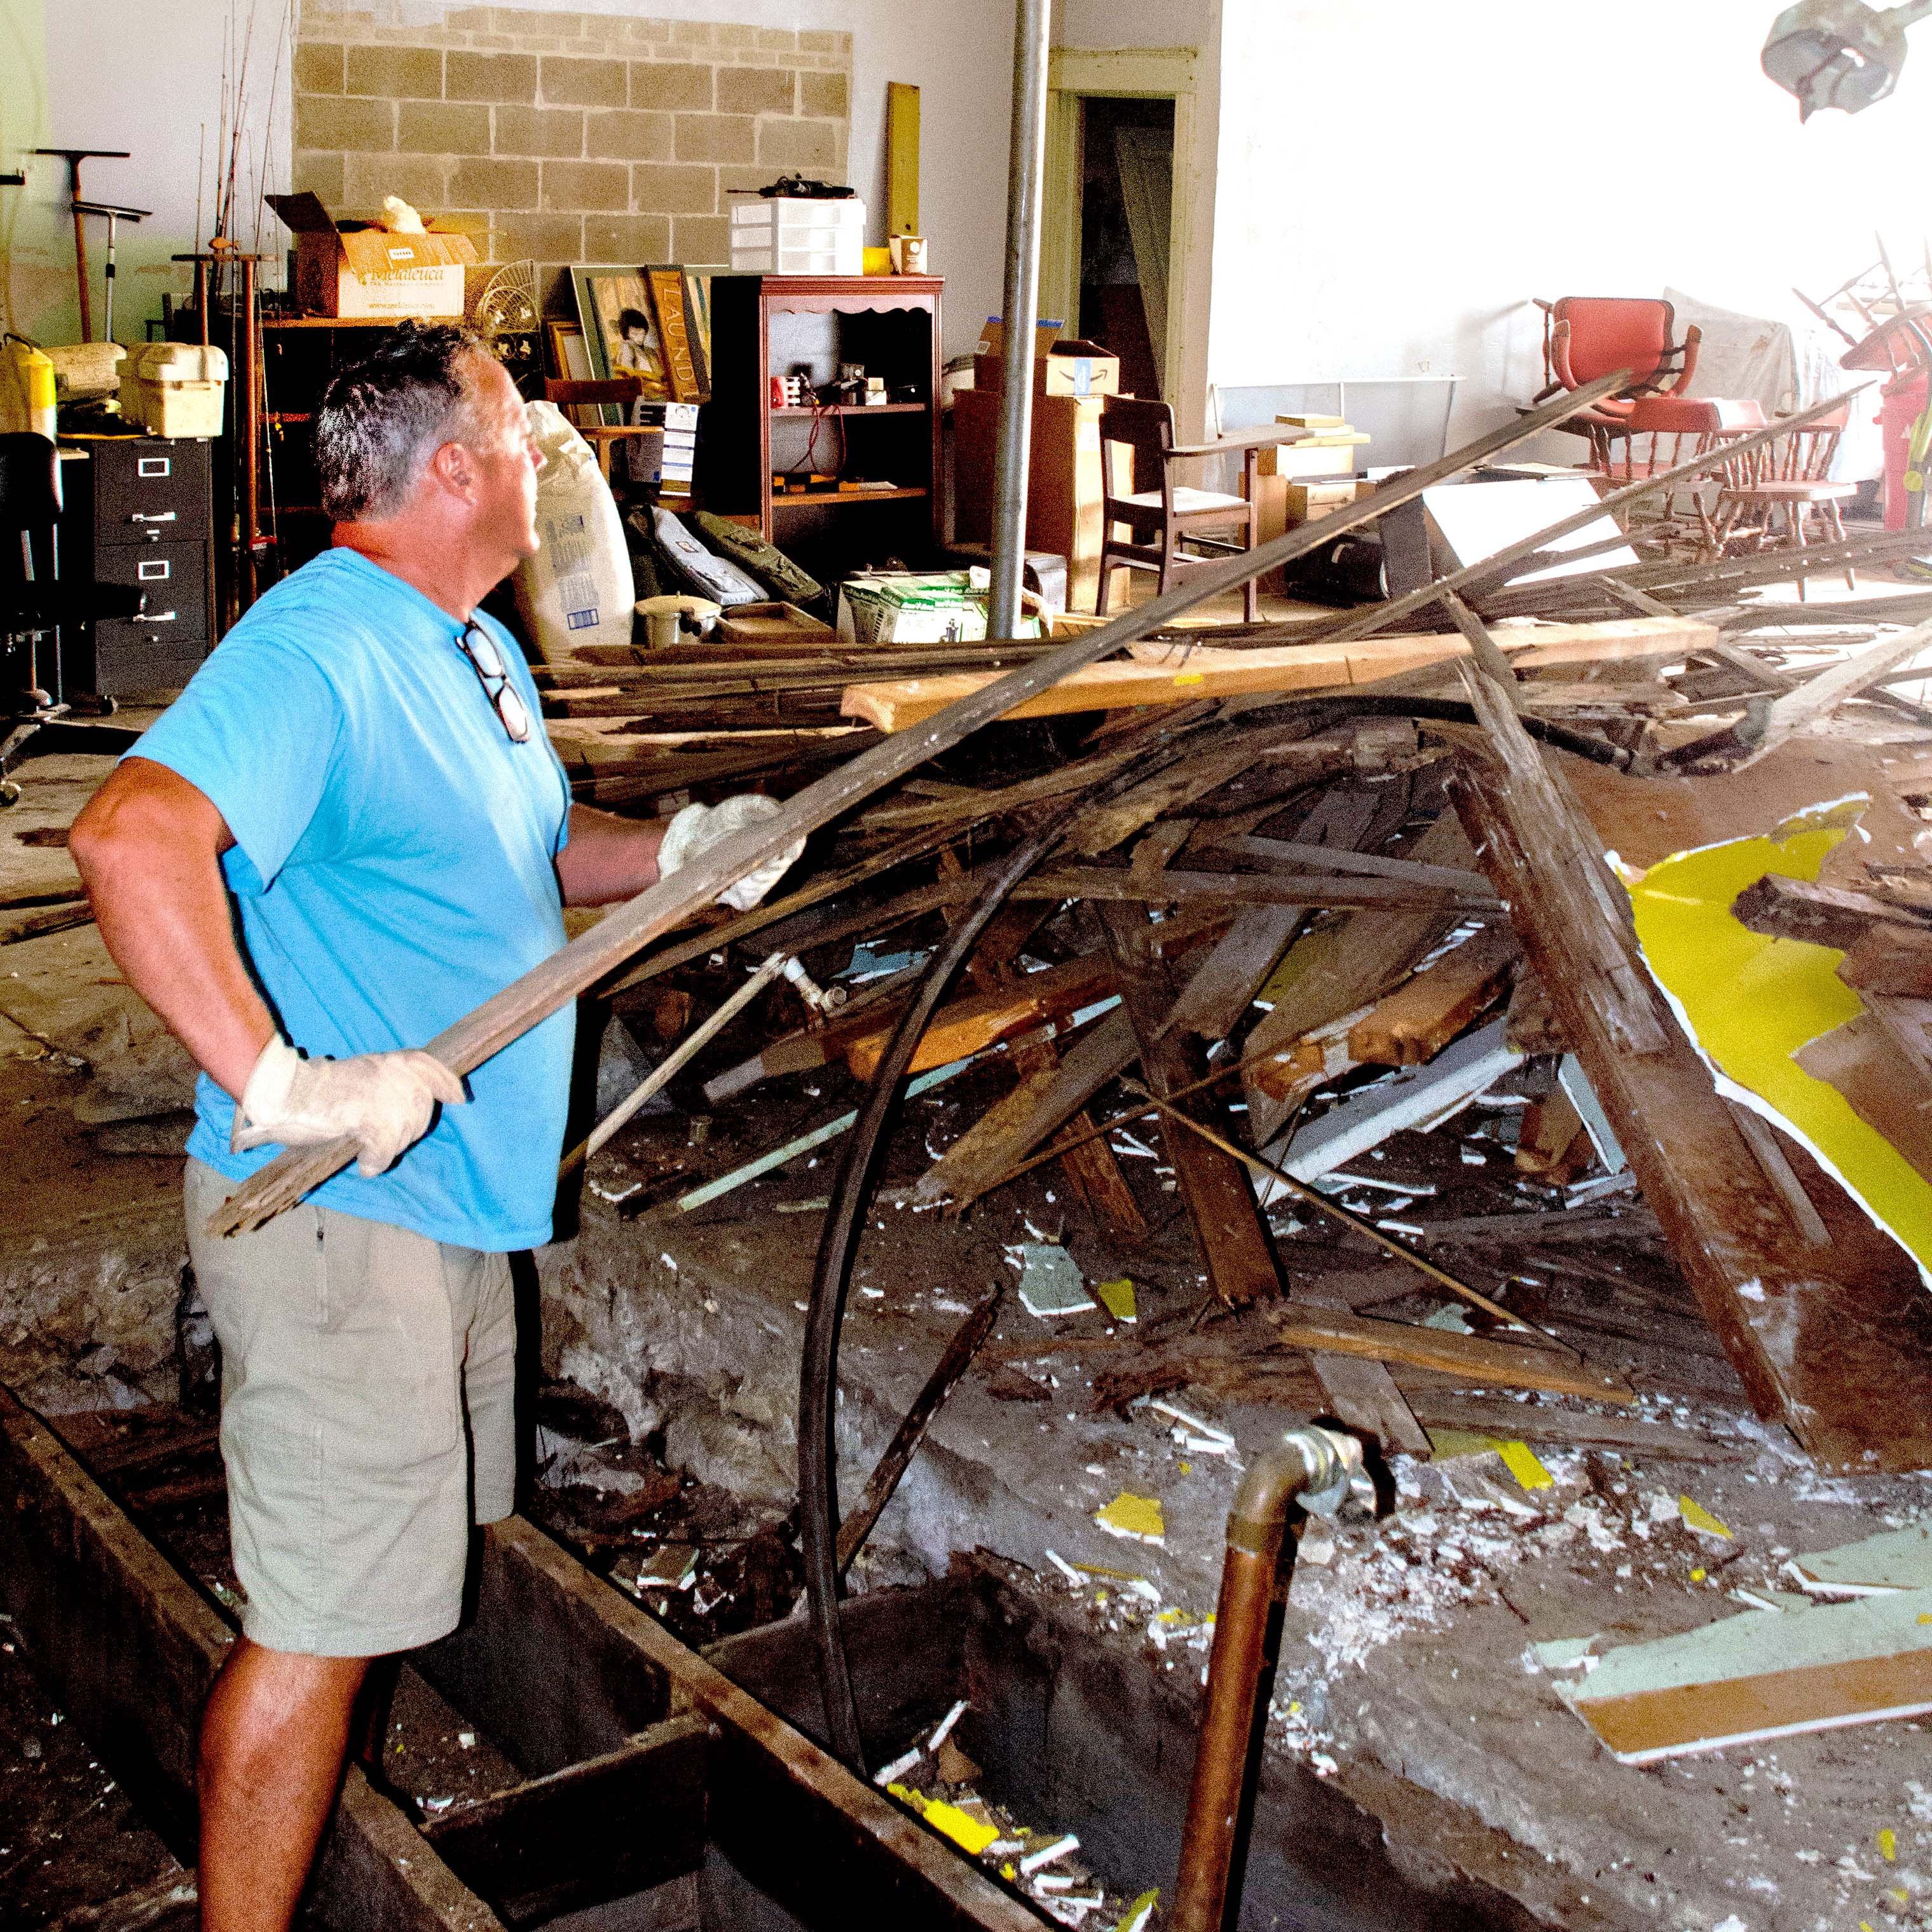 Peggy Brandt, left, and Genny Abrahams share a laugh in the back of Et Cetera Shop, a non-profit thrift store that has been in Hillsboro for 37 years. Brandt and Abrahams and other volunteers clean and polish donated items before making them available for sale. In November, Et Cetera donated $10,000 to local and international relief causes, including $7,000 for the Mennonite Central Committee to help with worldwide hunger and disaster recovery needs. Et Cetera also contributed $1,000 toward Main Street Ministries and $2,000 toward Hillsboro Elementary playground equipment, said shop manager Carol Abrahams.